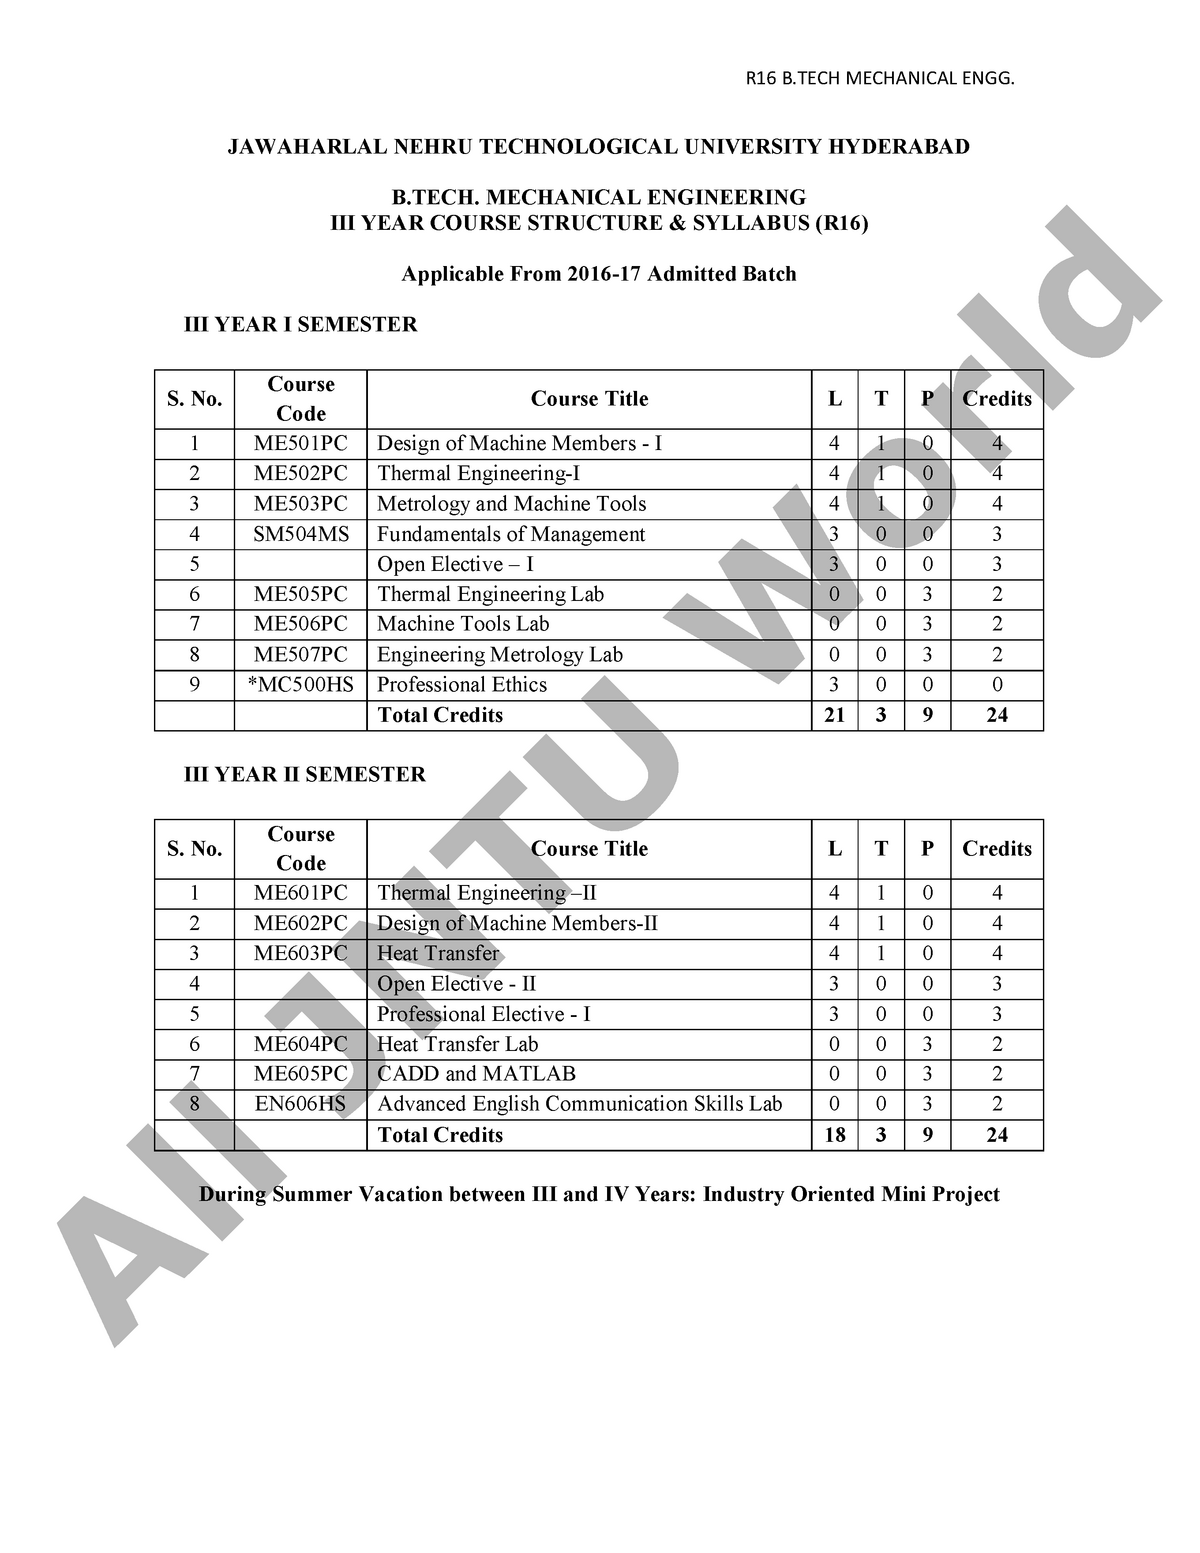 Jntuh B Tech 3 Year ME R16 Syllabus - - StuDocu